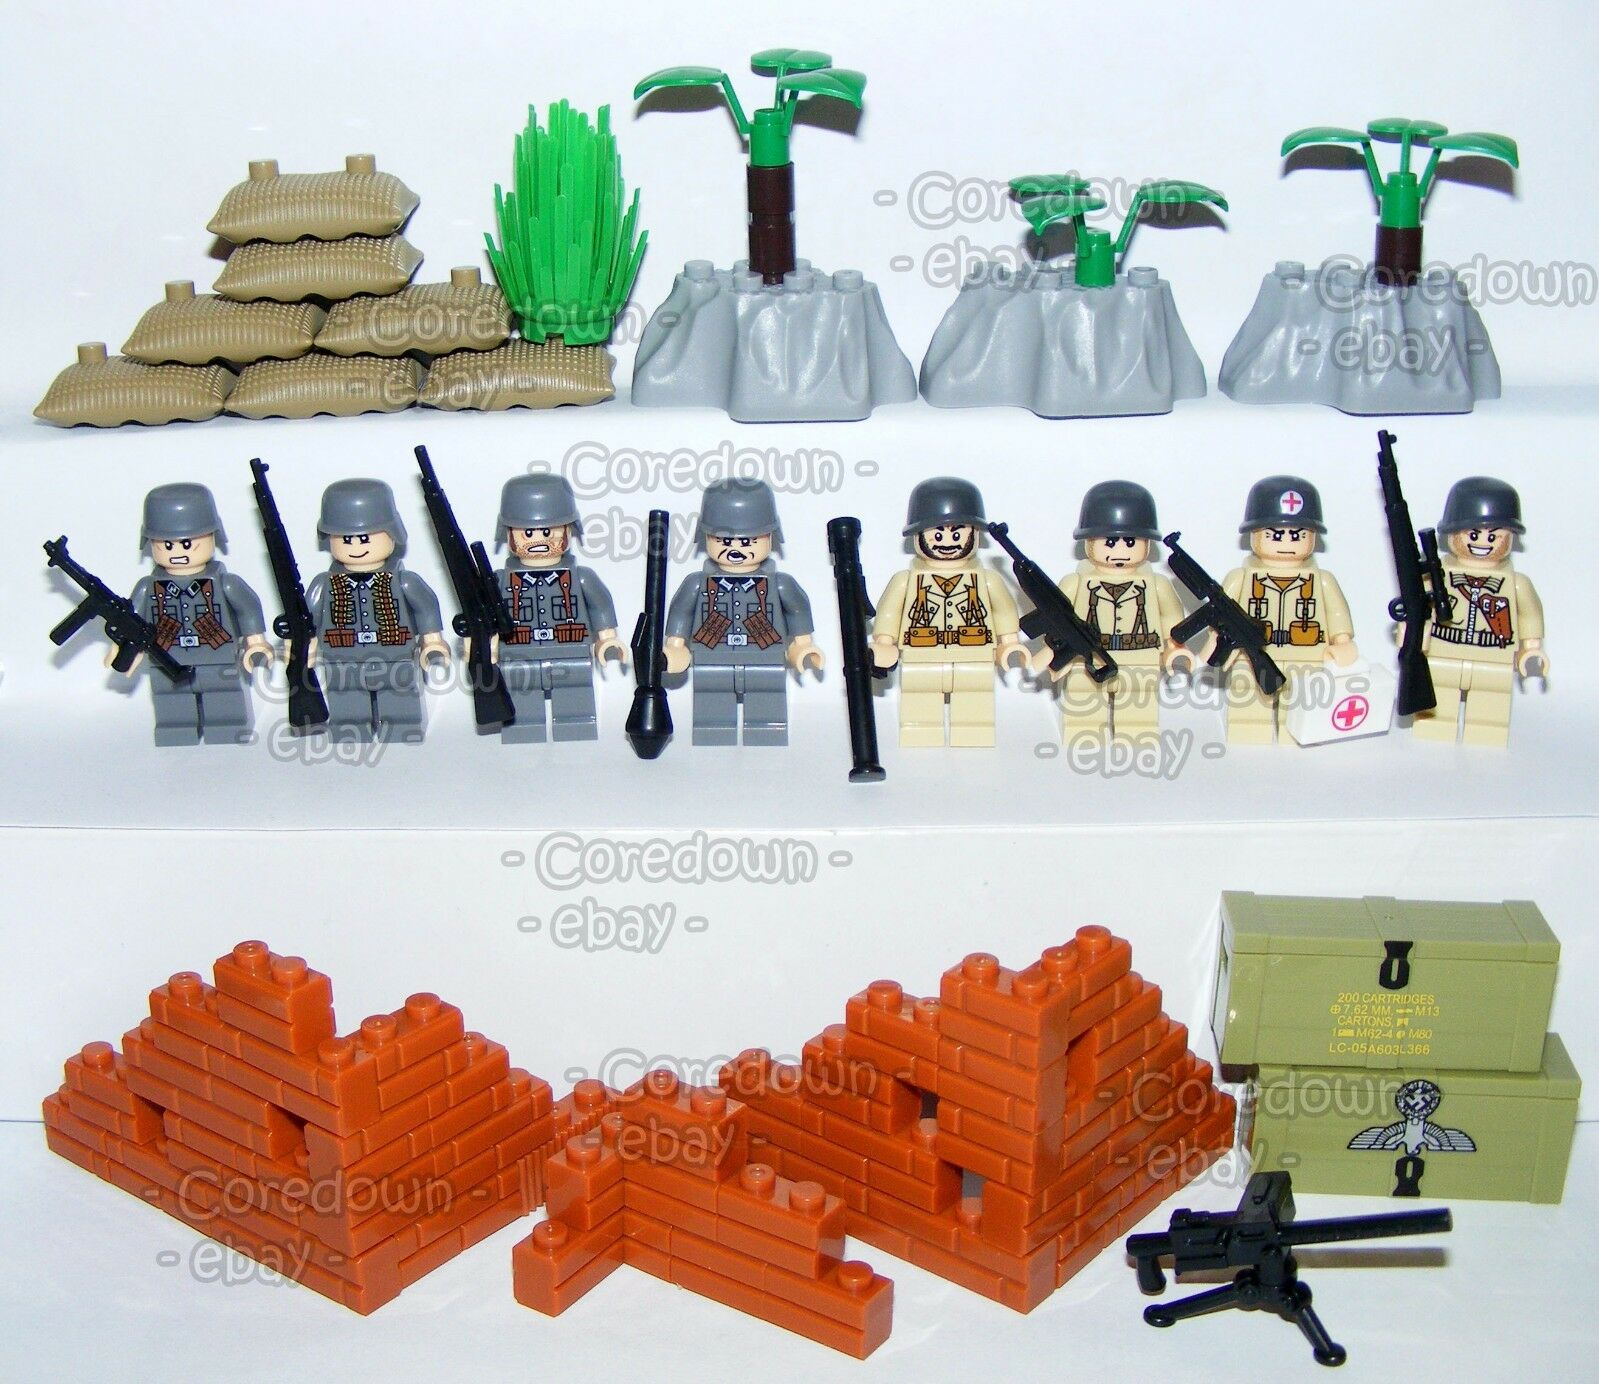 Custom Lego World War 2 German vs vs vs USA Military Soldiers Army Minifigures & Brick 03b185